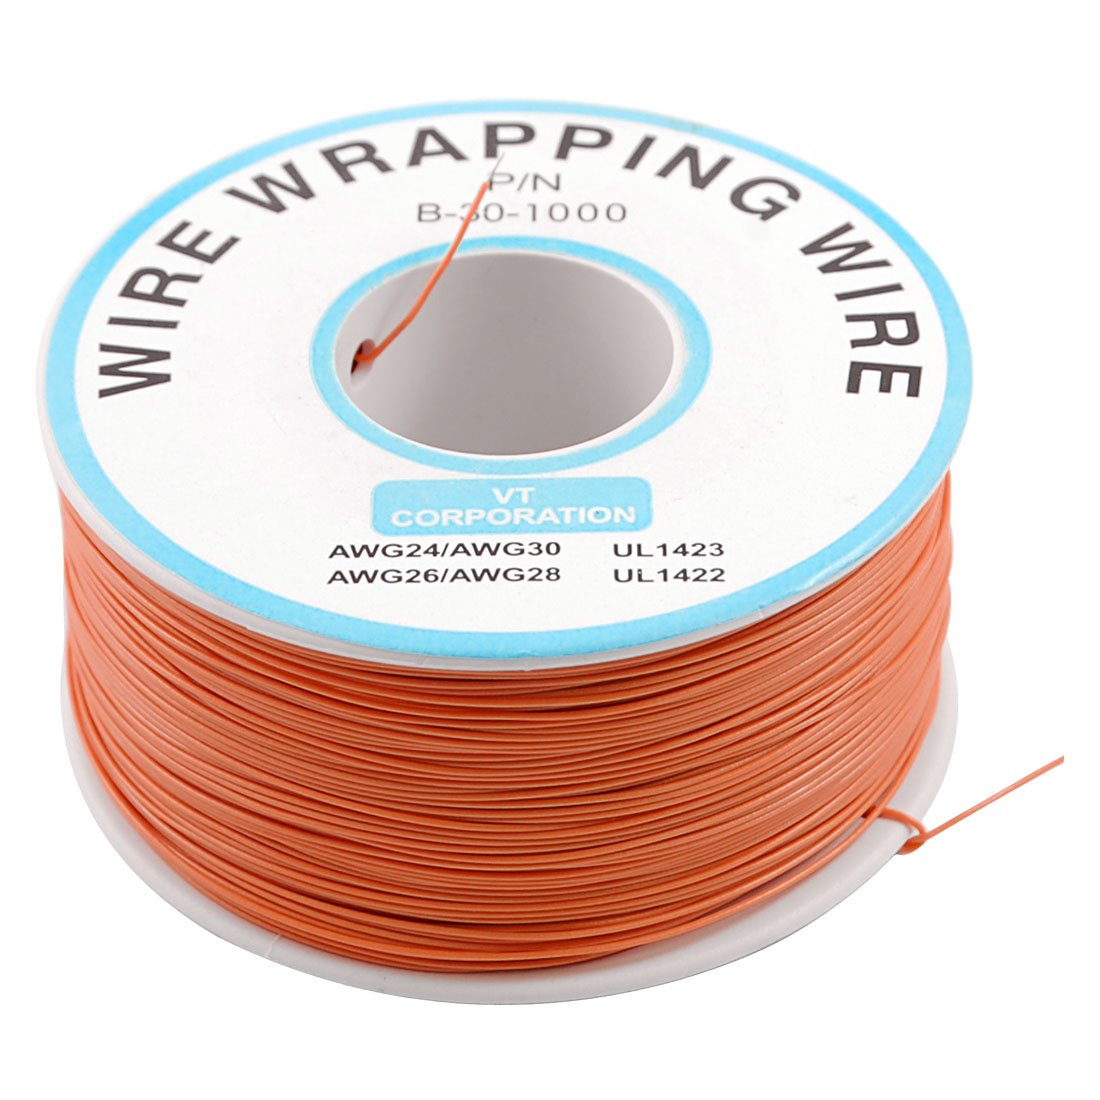 Orange 0.5mm 30AWG Wire Wrapping Wrap Flexible insulation tin-plated Jumper Cable 1000Ft PCB Solder electronic test motherboard 6m 20ft long 12mm wire spiral wrap wrapping sleeving band cable black white x 2